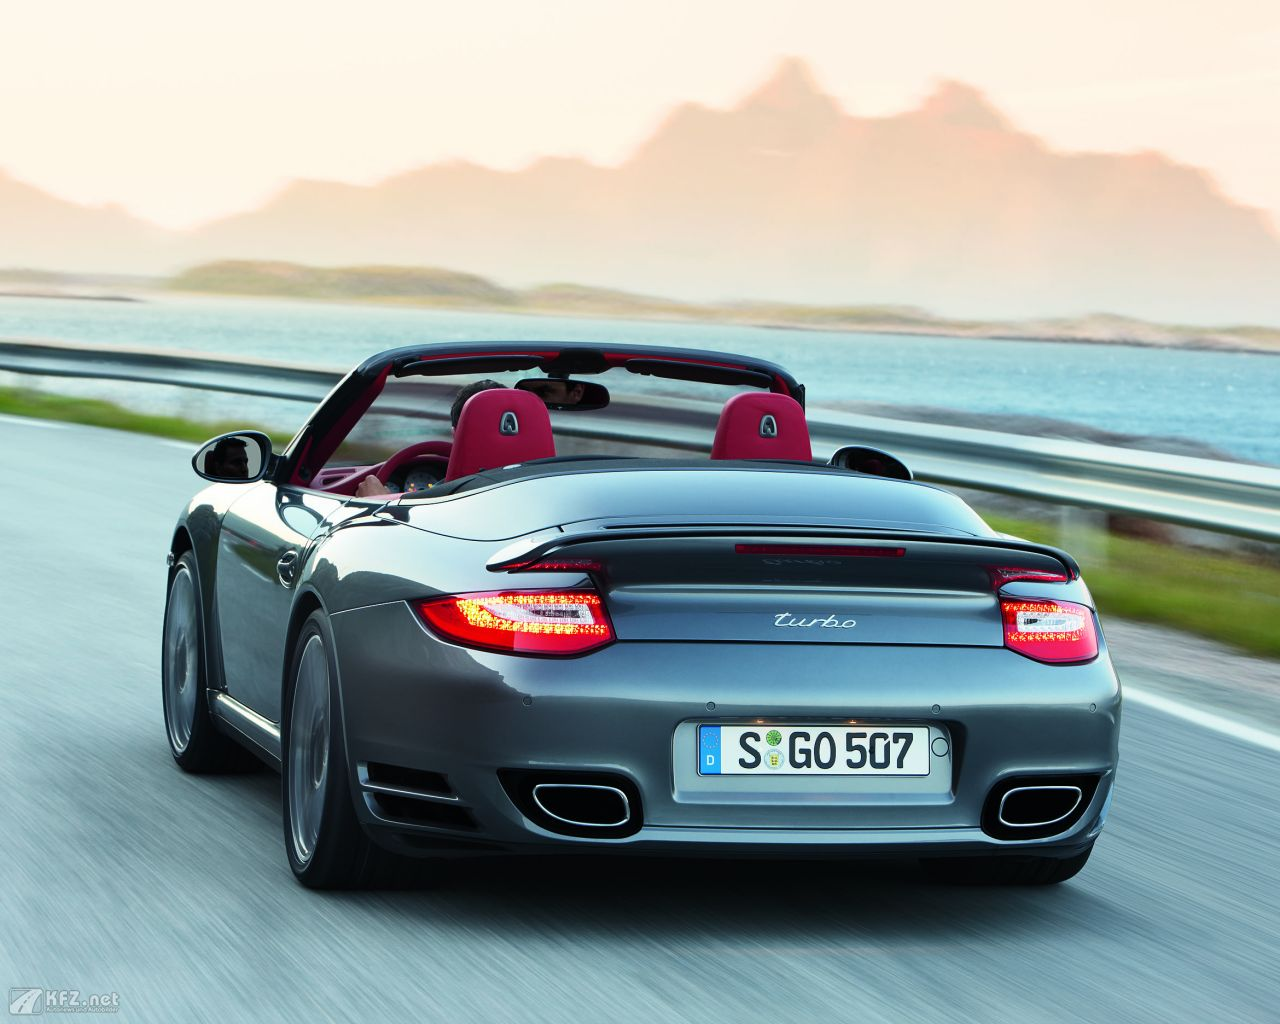 porsche-911-turbo-coupe-1280x1024-13